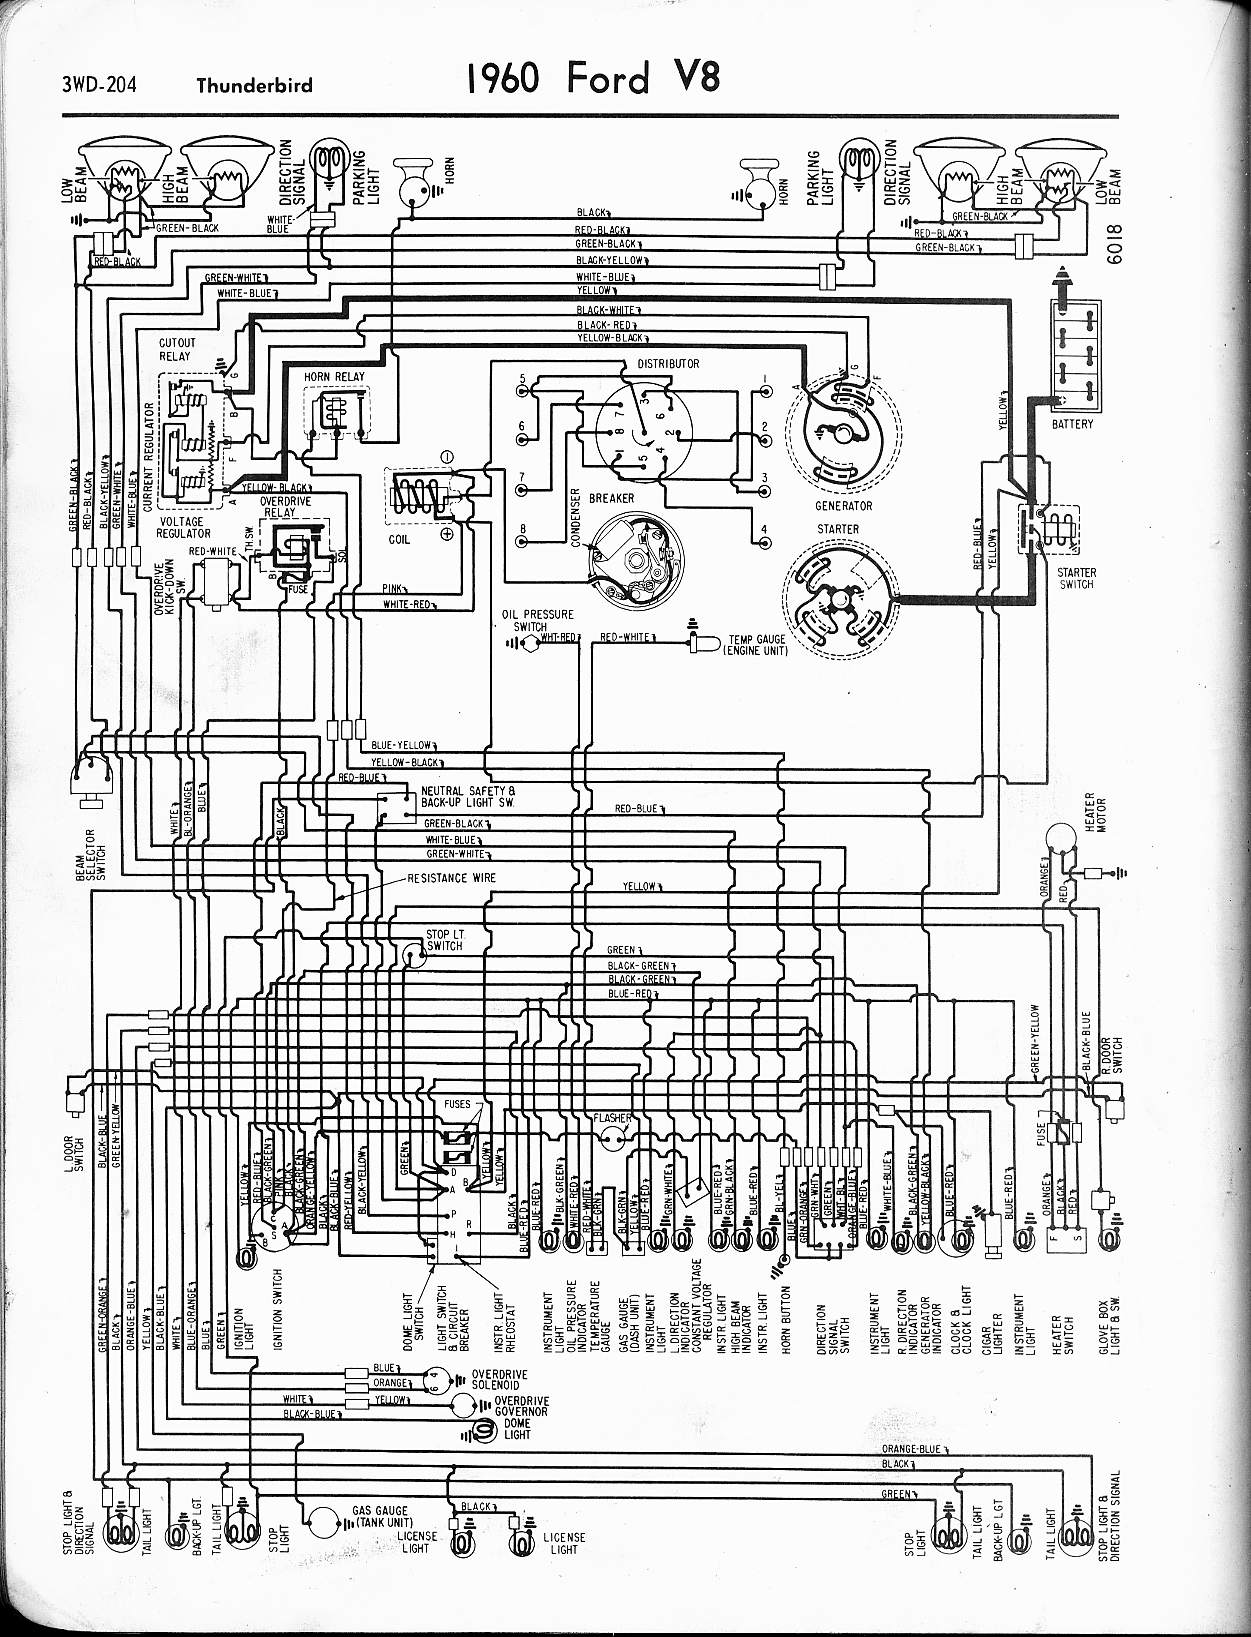 MWire5765 204?resize=665%2C870 ford puma radio wiring diagram wiring diagram  at n-0.co